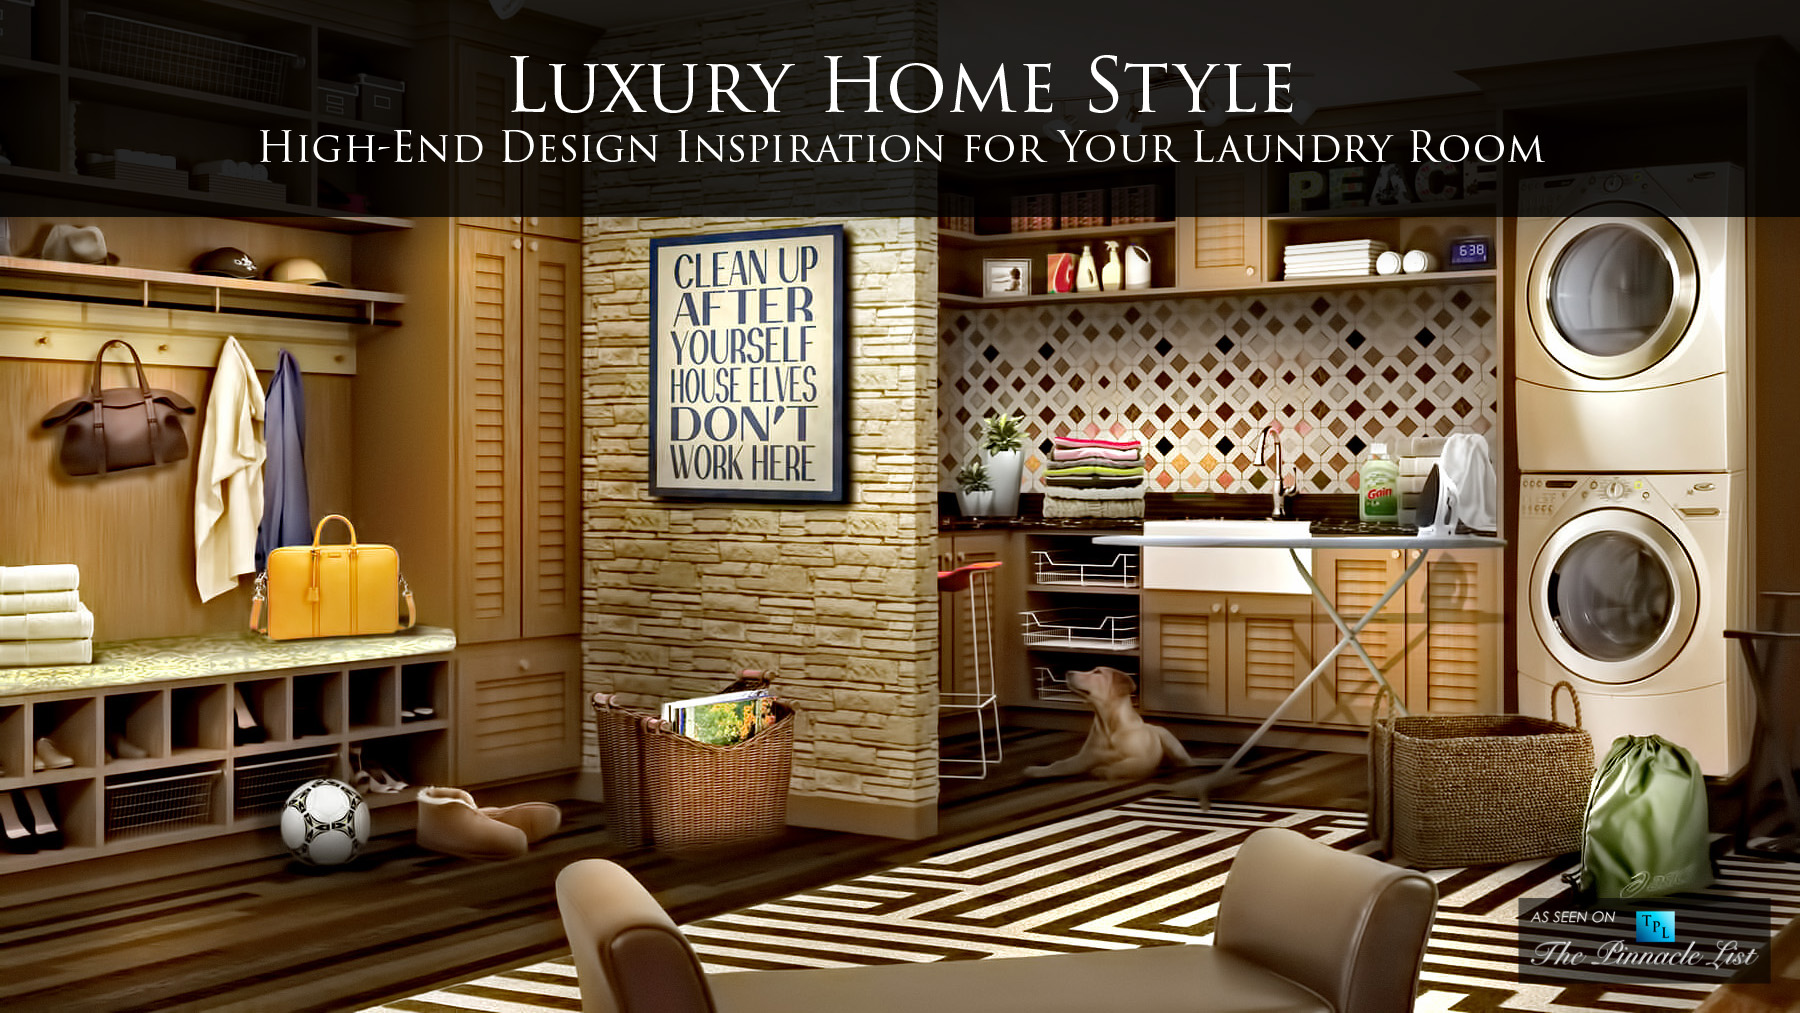 Marvelous Luxury Home Style U2013 High End Design Inspiration For Your Laundry Room